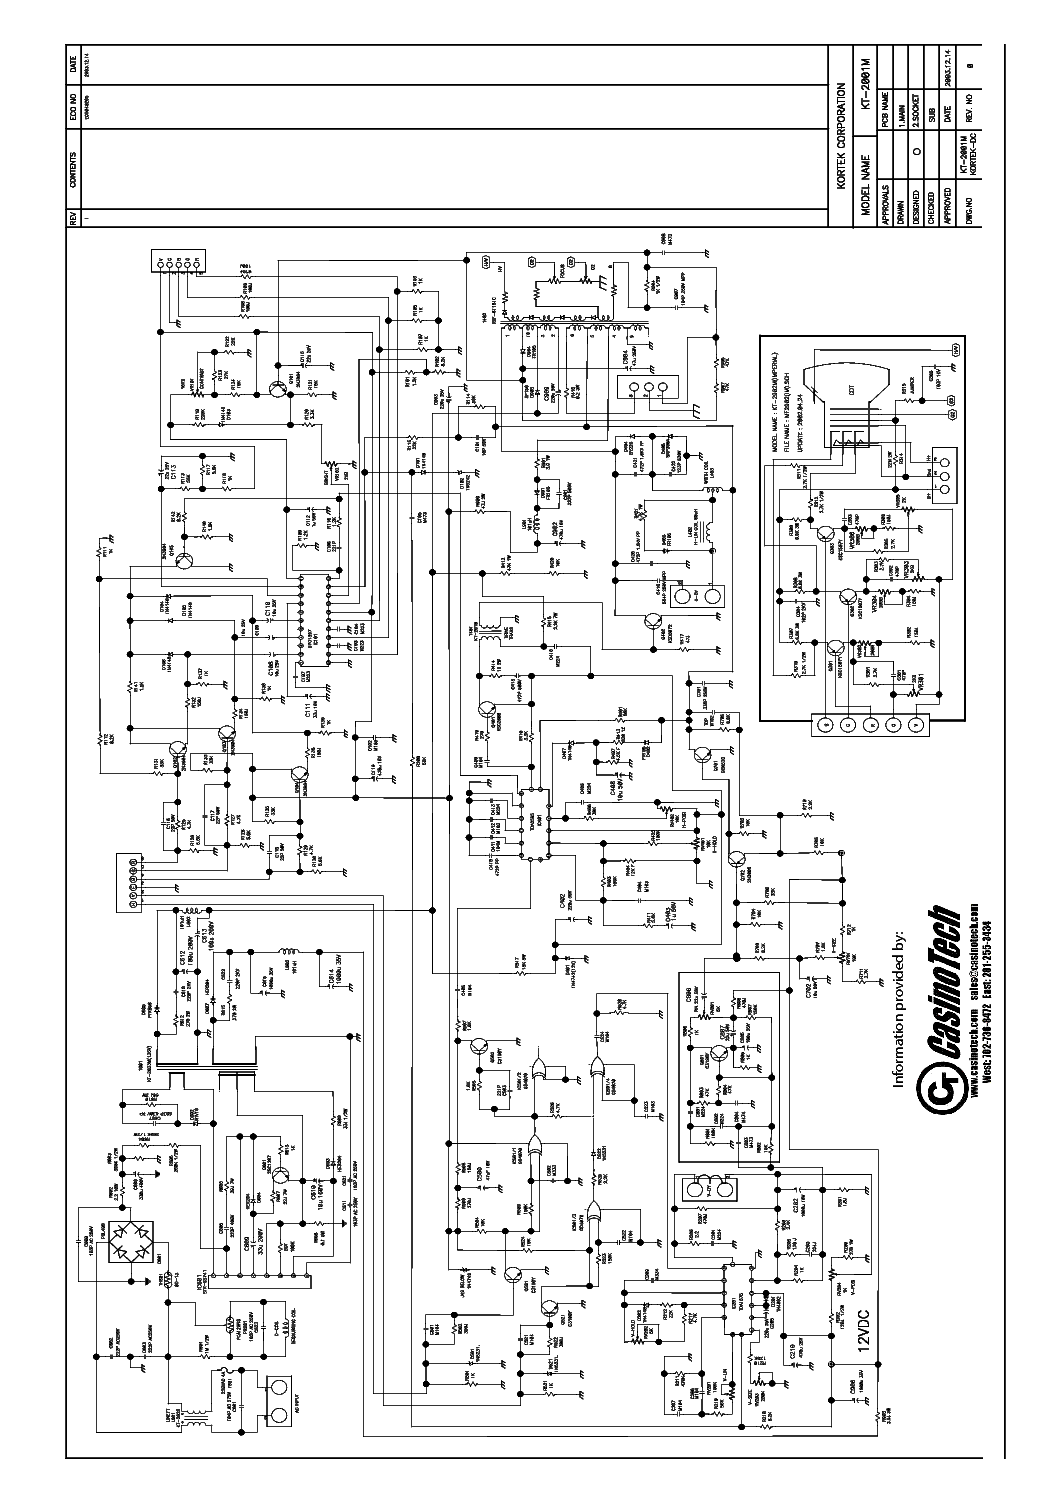 Kortek Kt2001m Service Manual Download  Schematics  Eeprom